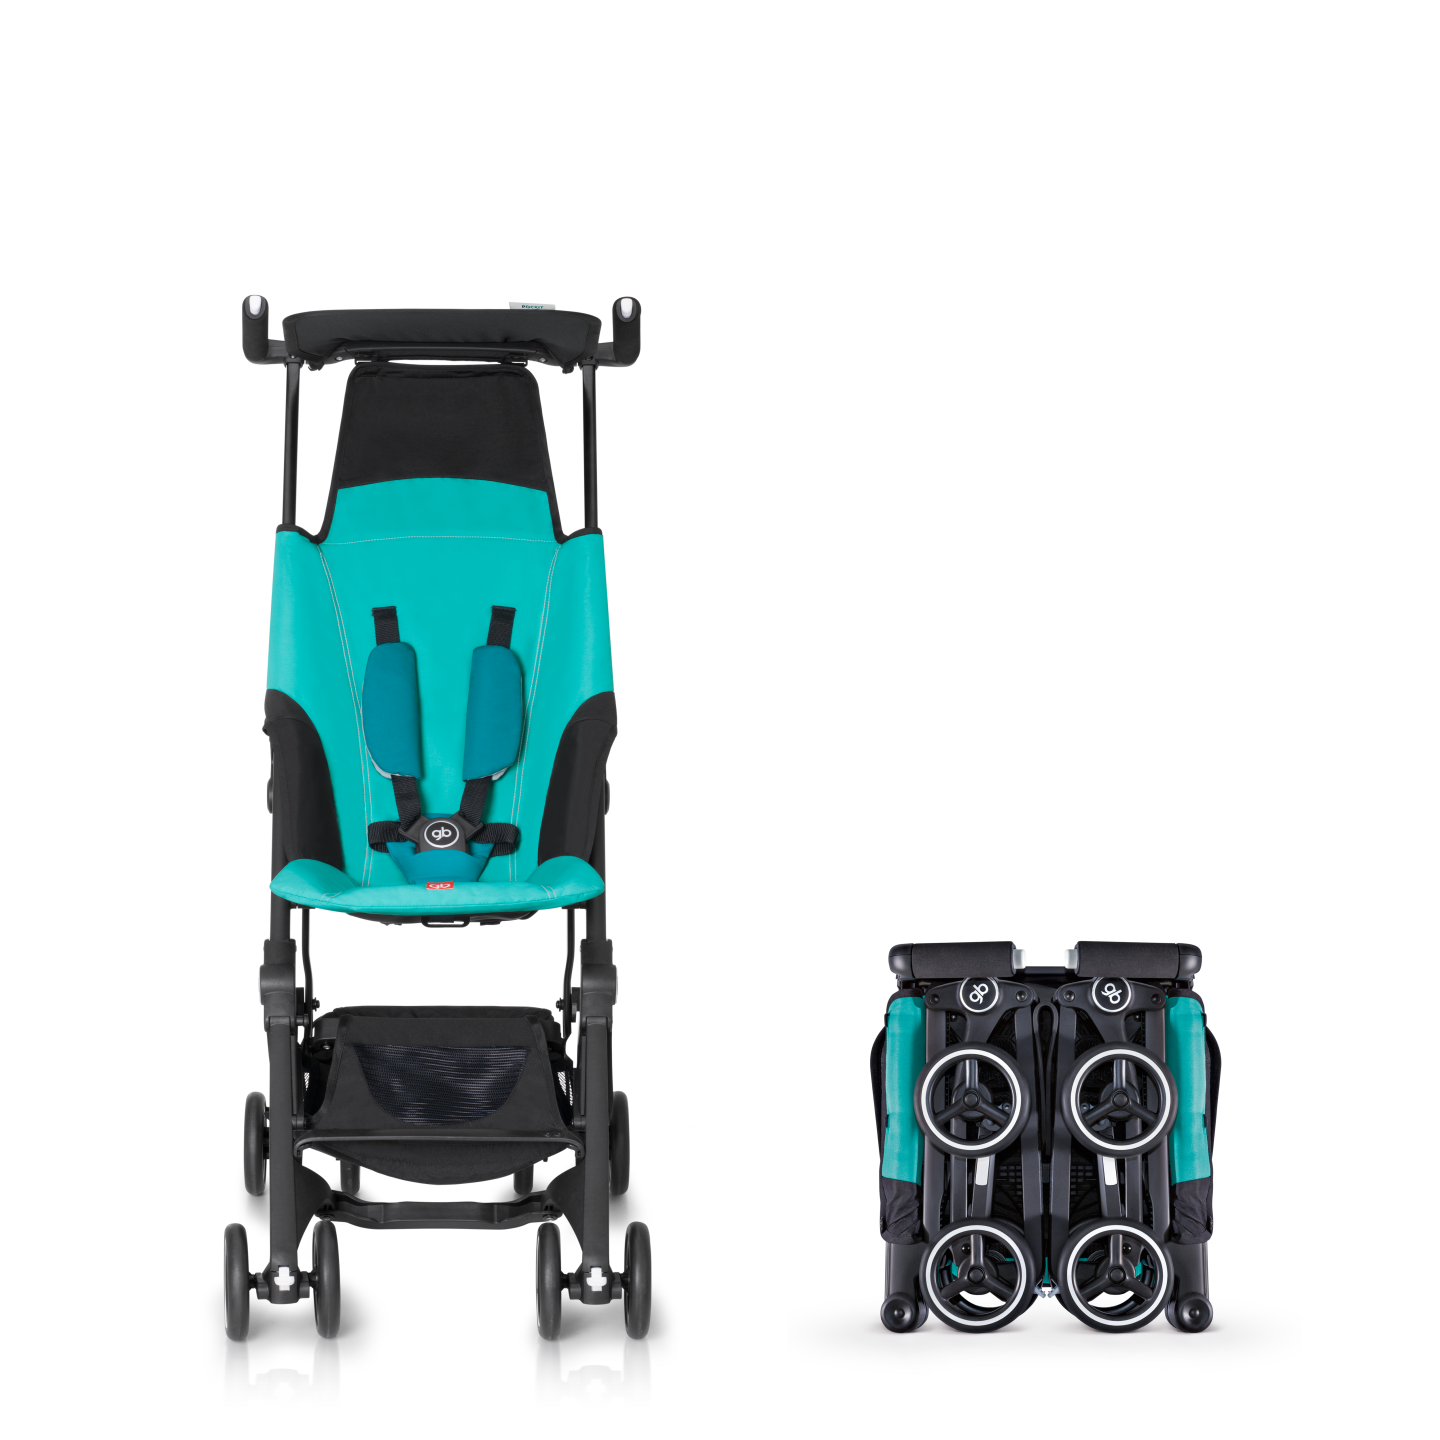 Goodbaby Pockit Stroller folds small enough to fit in